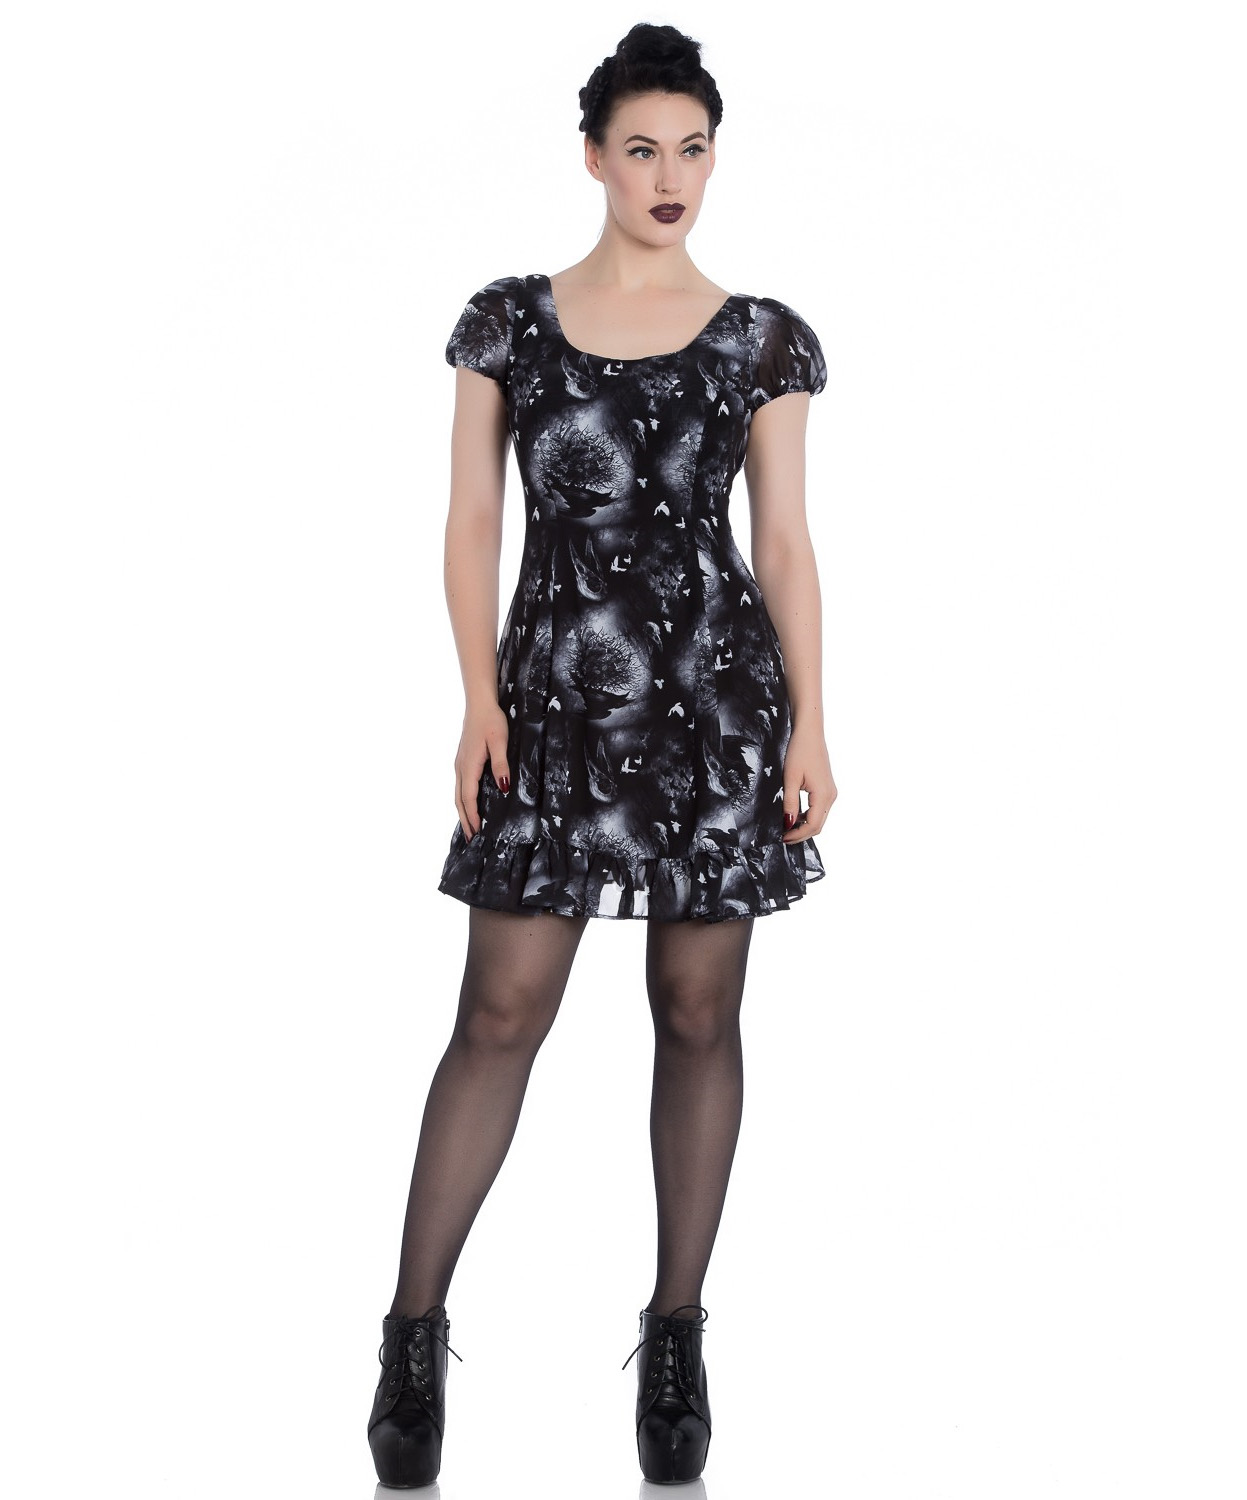 Hell-Bunny-Alchemy-Gothic-Black-Skater-Mini-Dress-ASH-Crows-Skulls-All-Sizes thumbnail 7